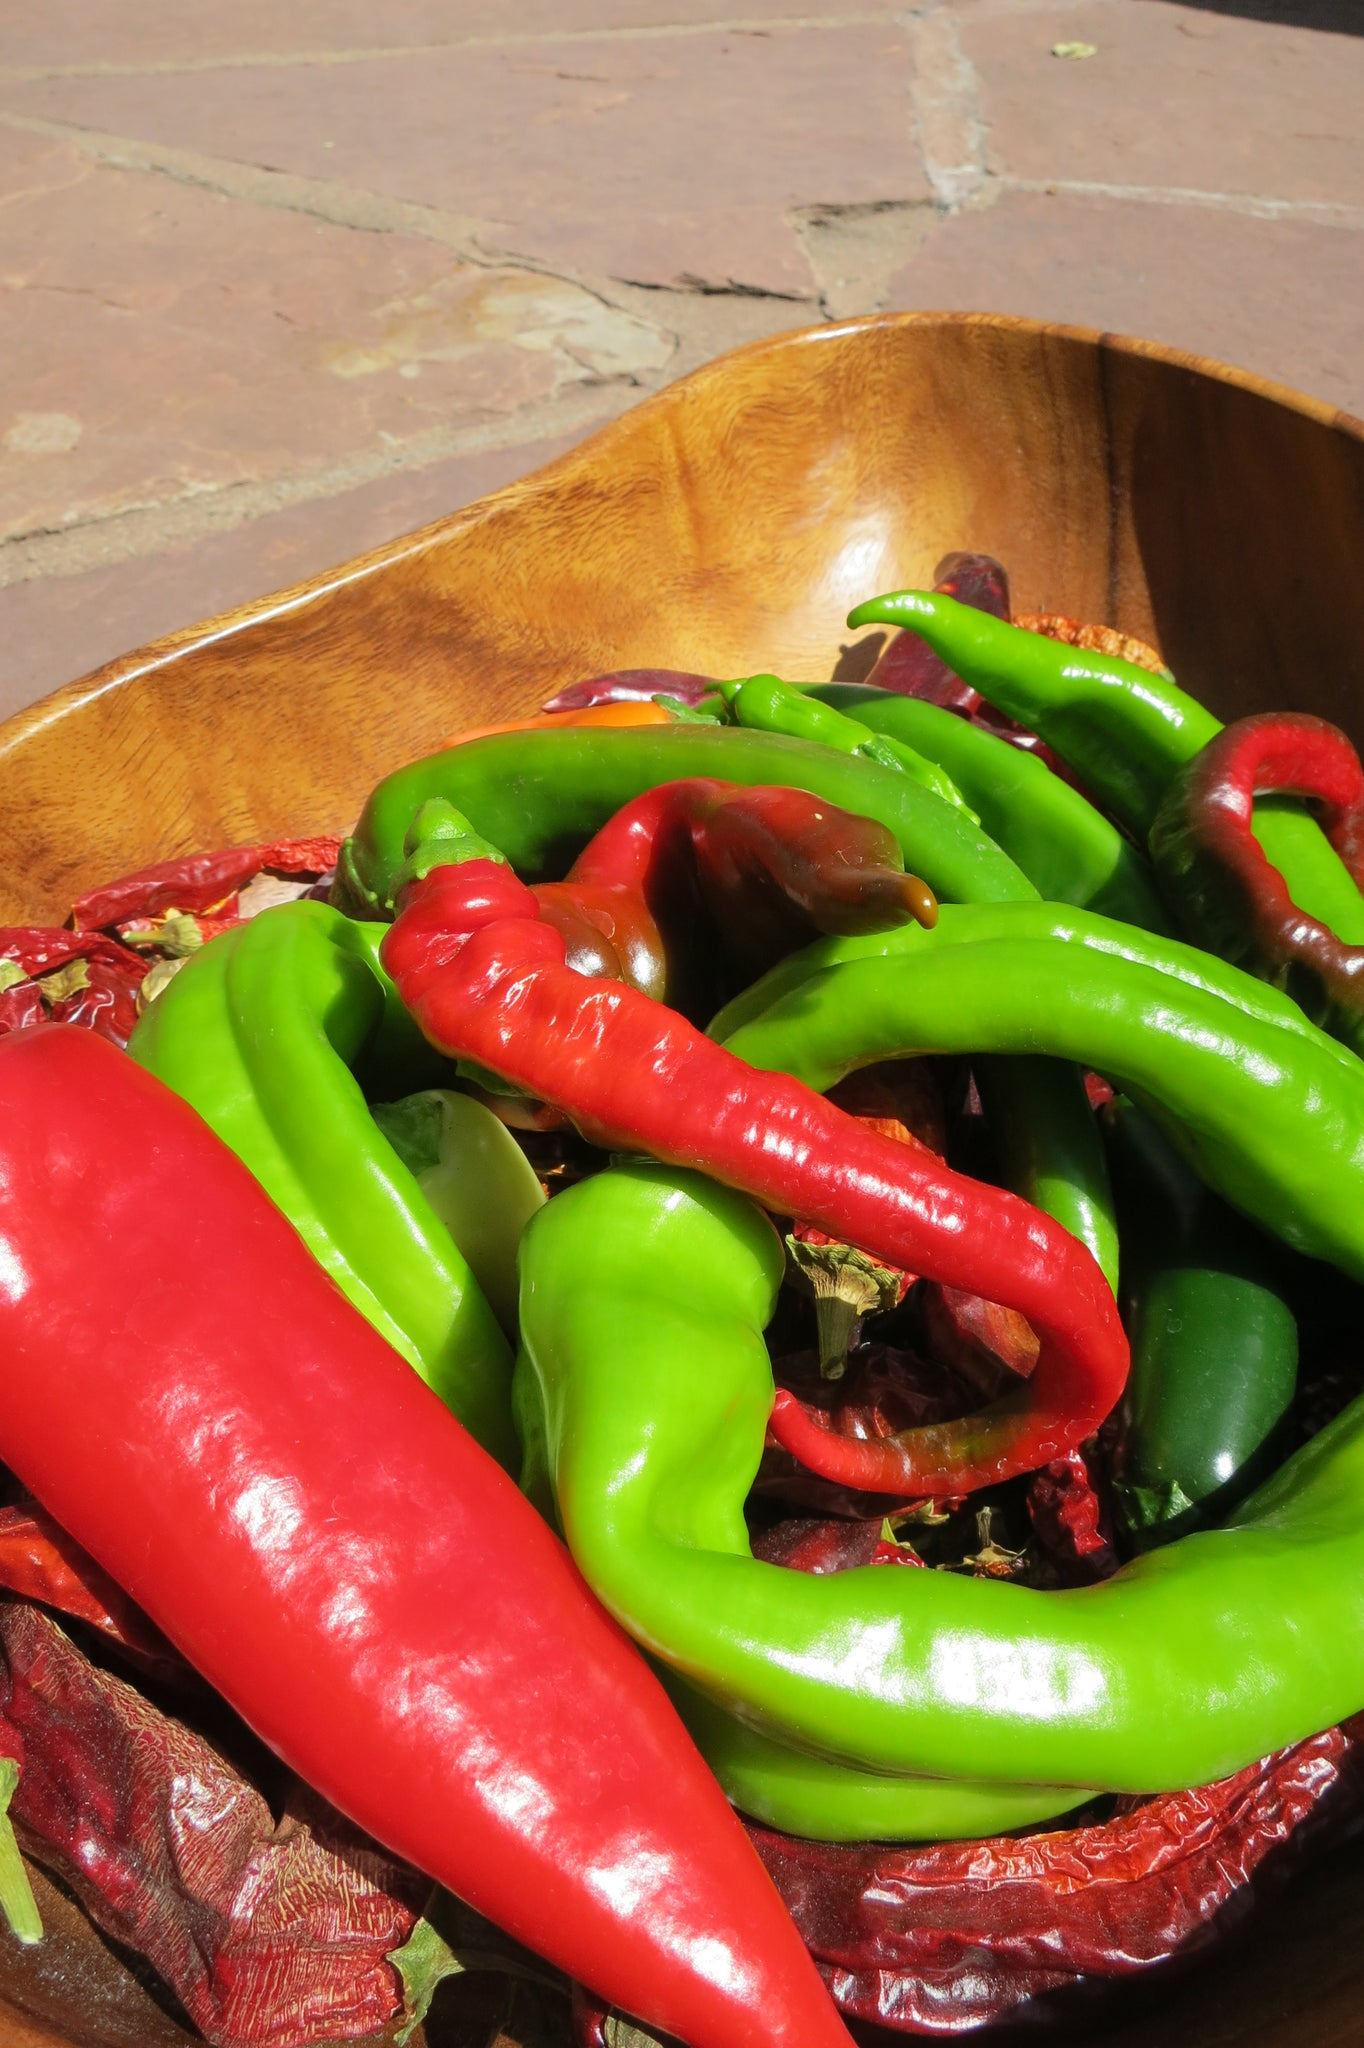 Red Chile is Mature Green Chile